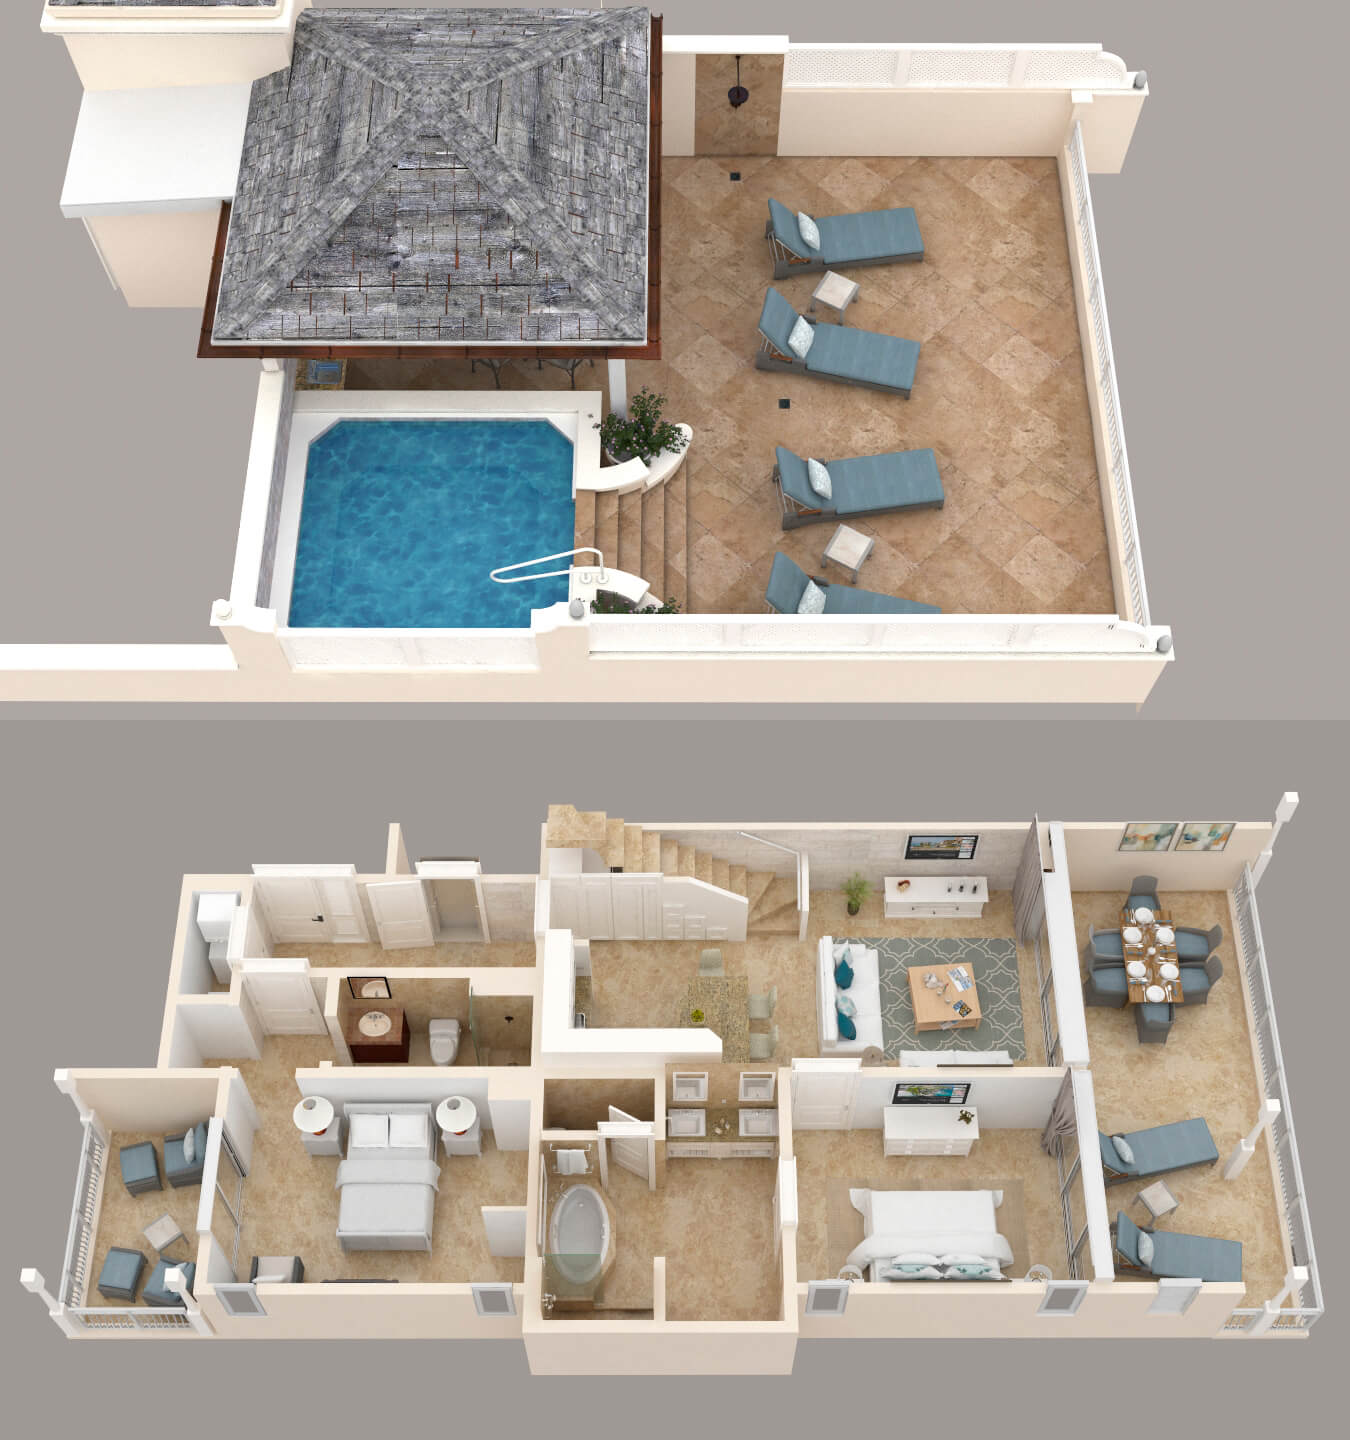 Two Bedroom Contemporary Penthouse & Rooftop Pool Floor Plan